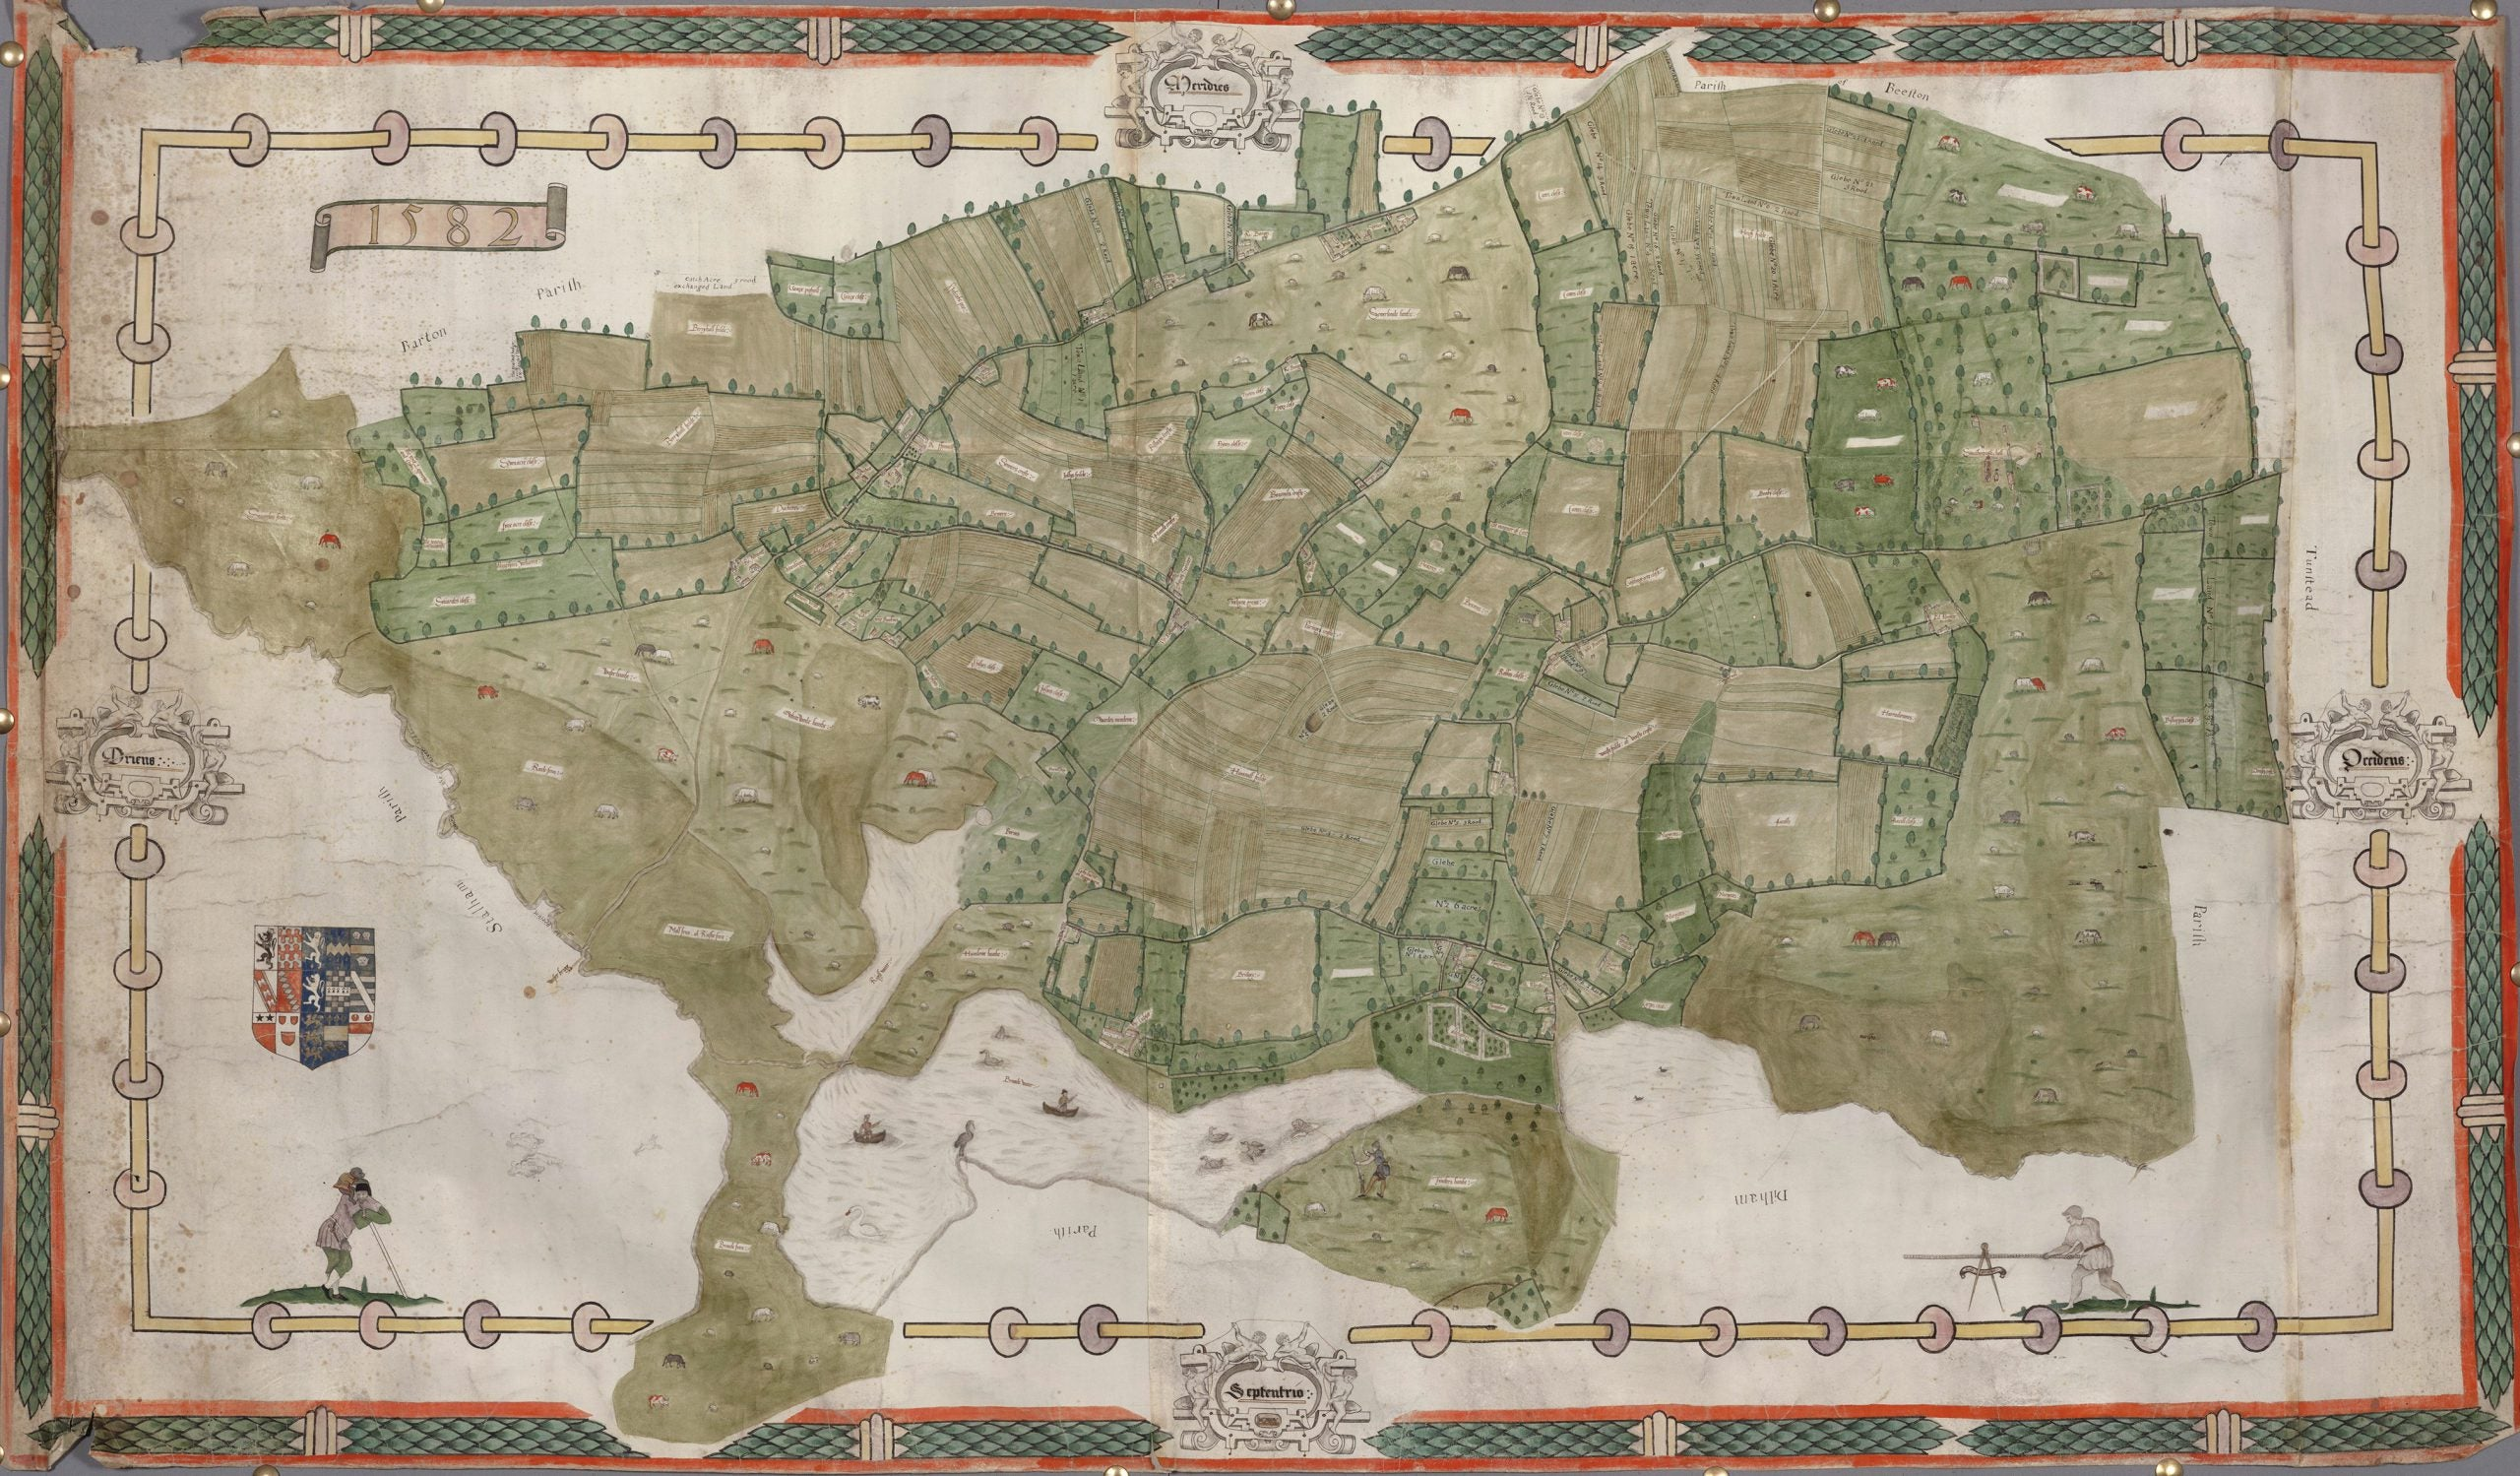 The greats outdoors: How estate maps shaped landscape painting